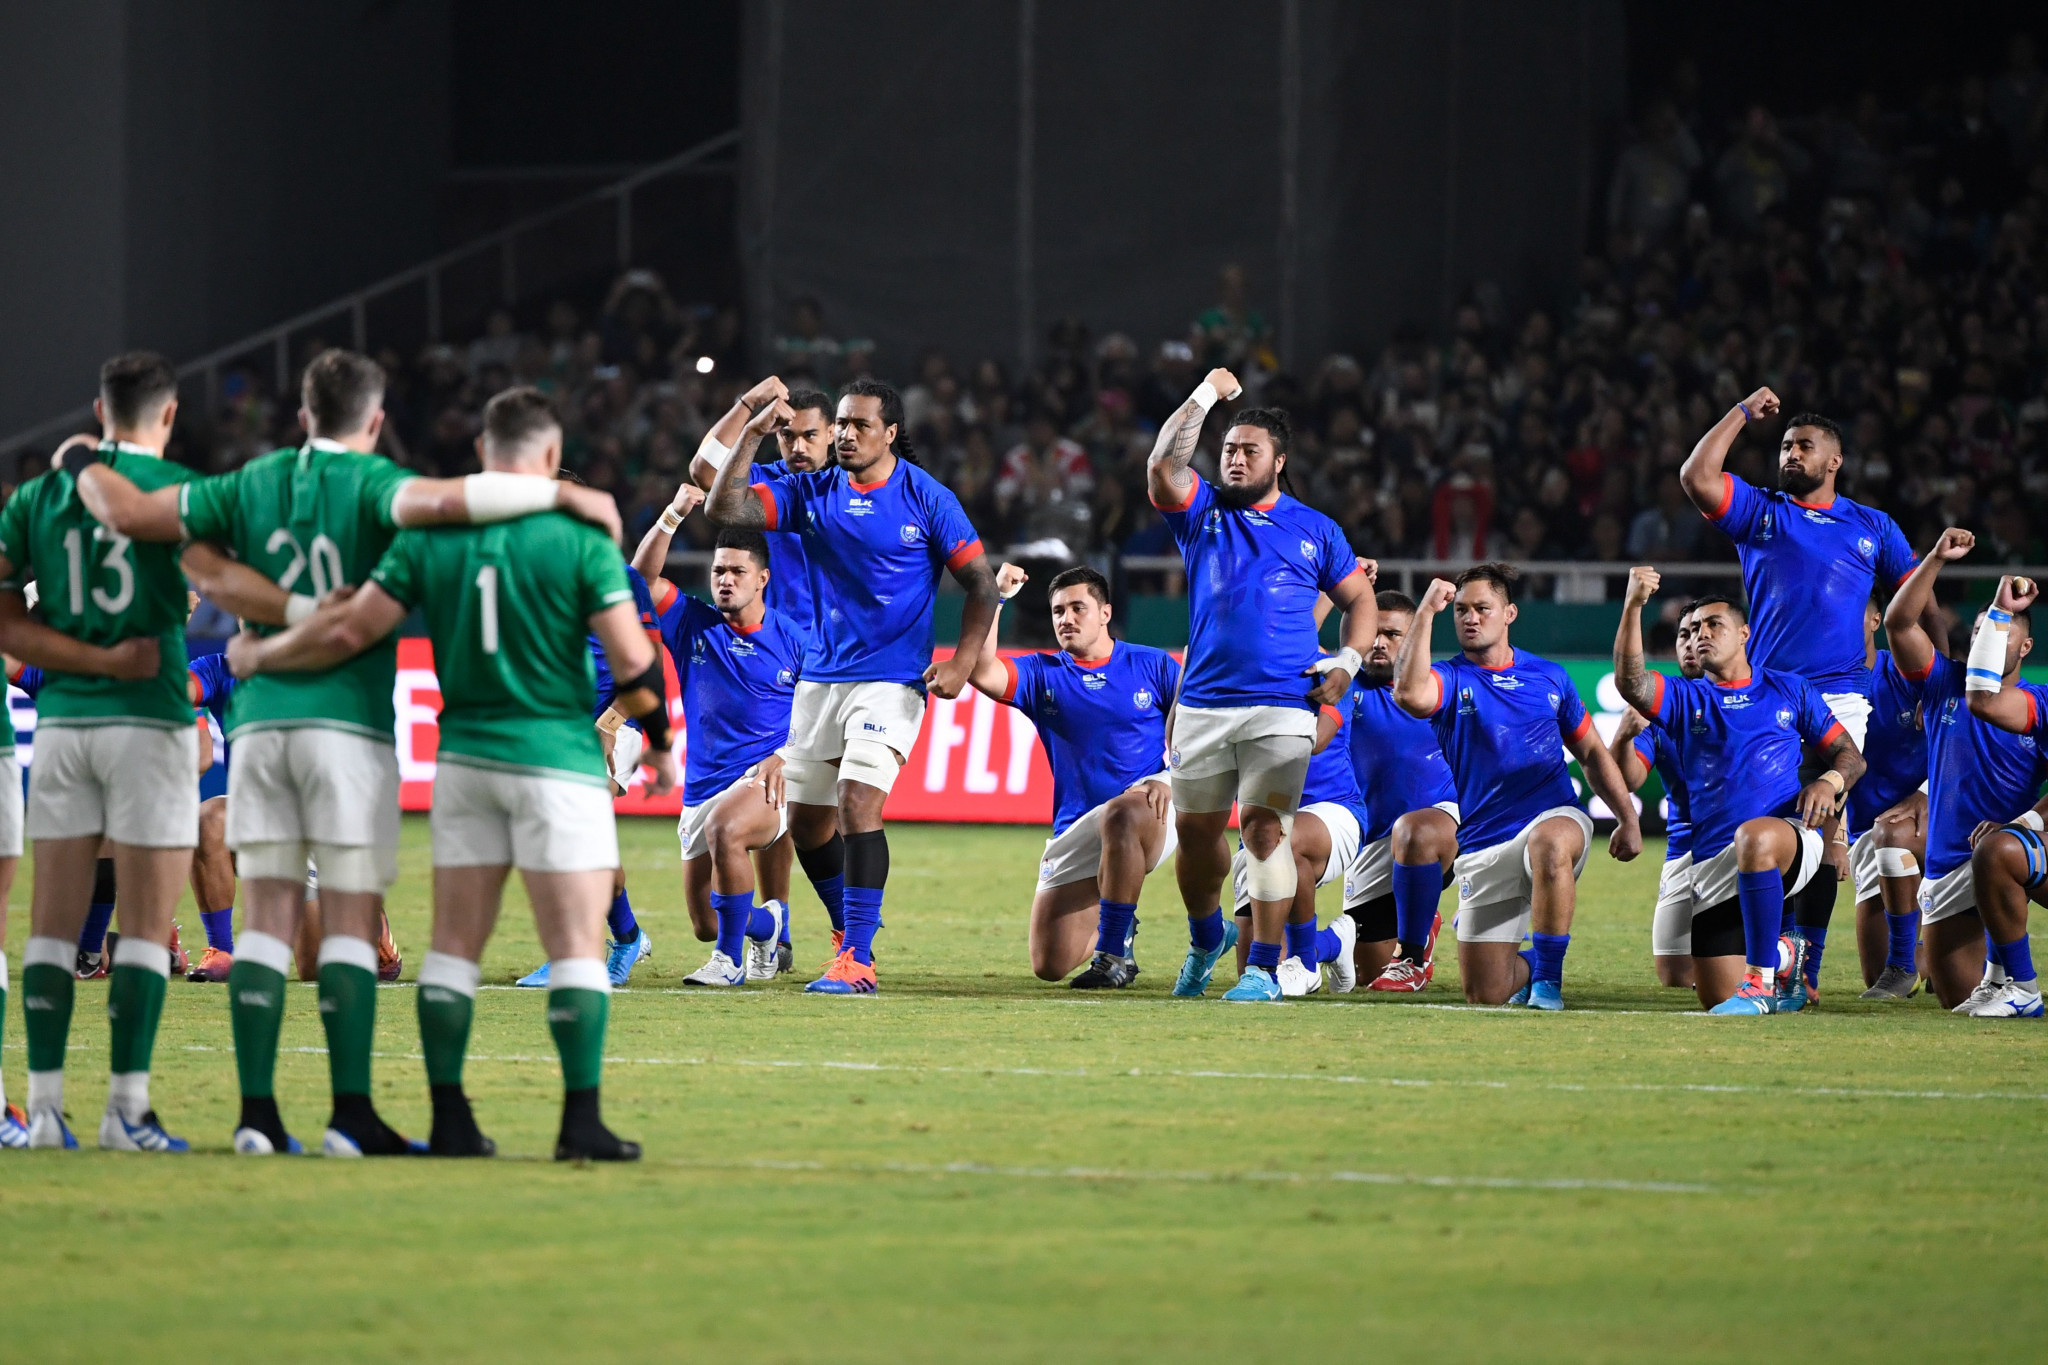 Ireland finally show their class at Rugby World Cup